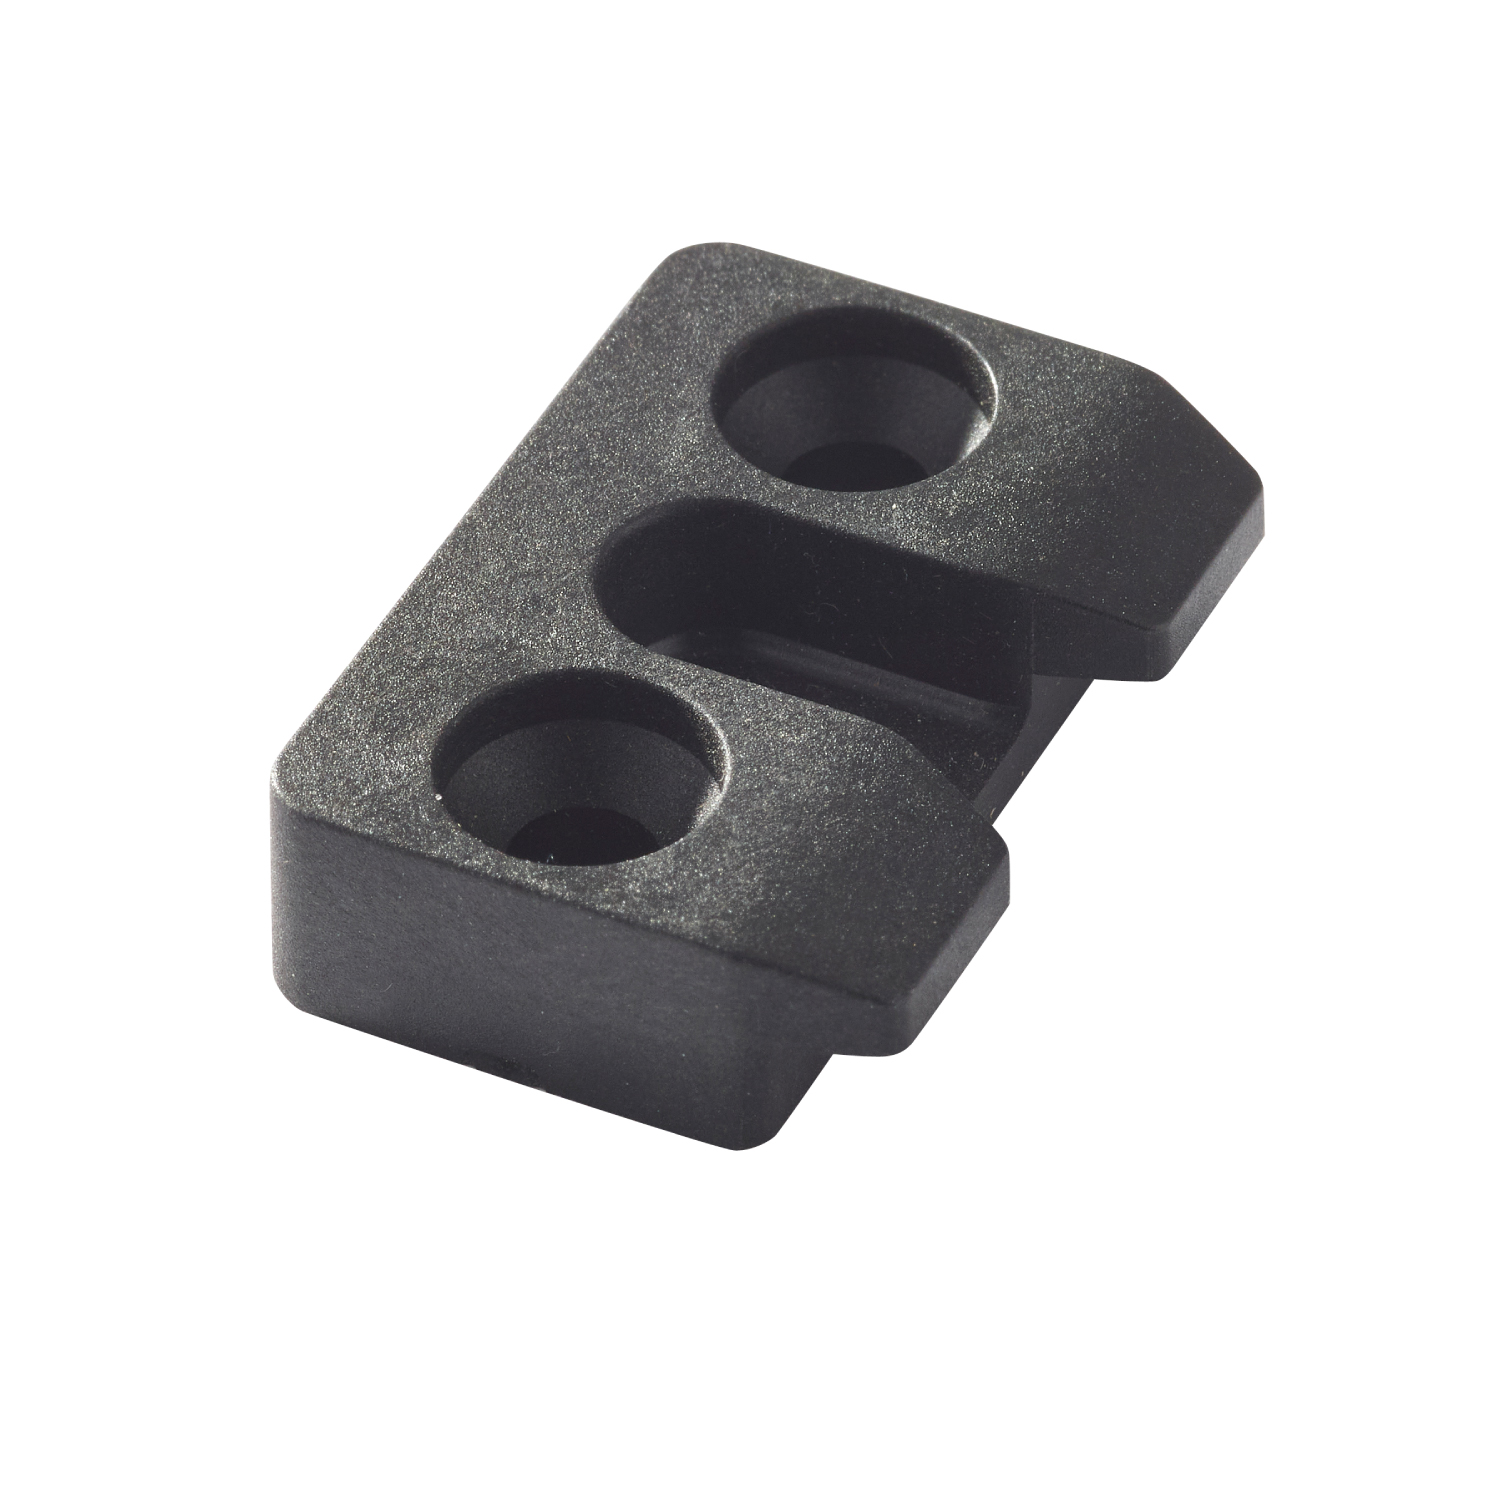 ERA Double Cam Anti-Lift Pin Block